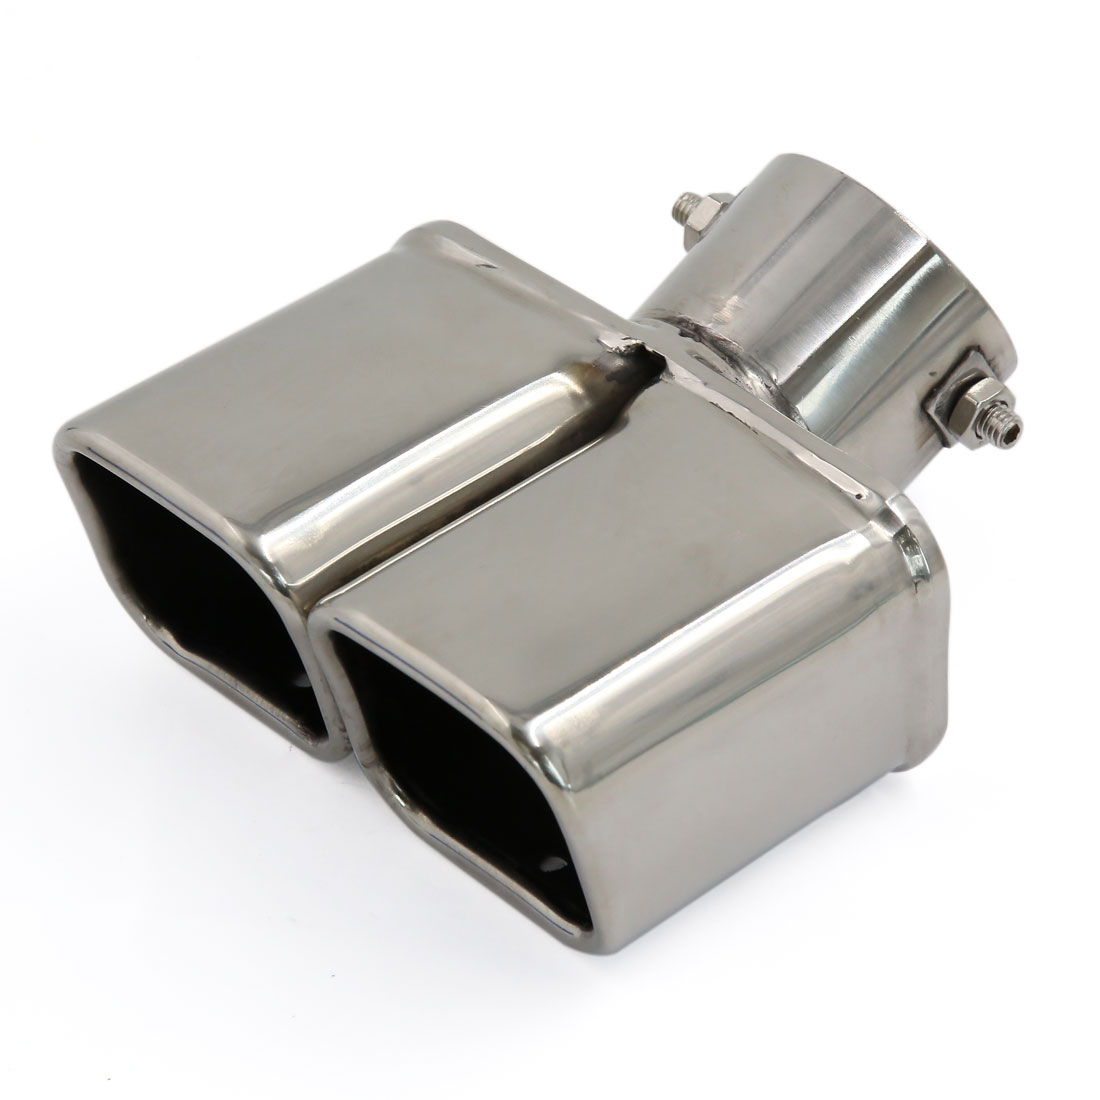 63mm Dia Inlet Silver Tone Exhaust Muffler Tip Tail Silencer for Auto Car